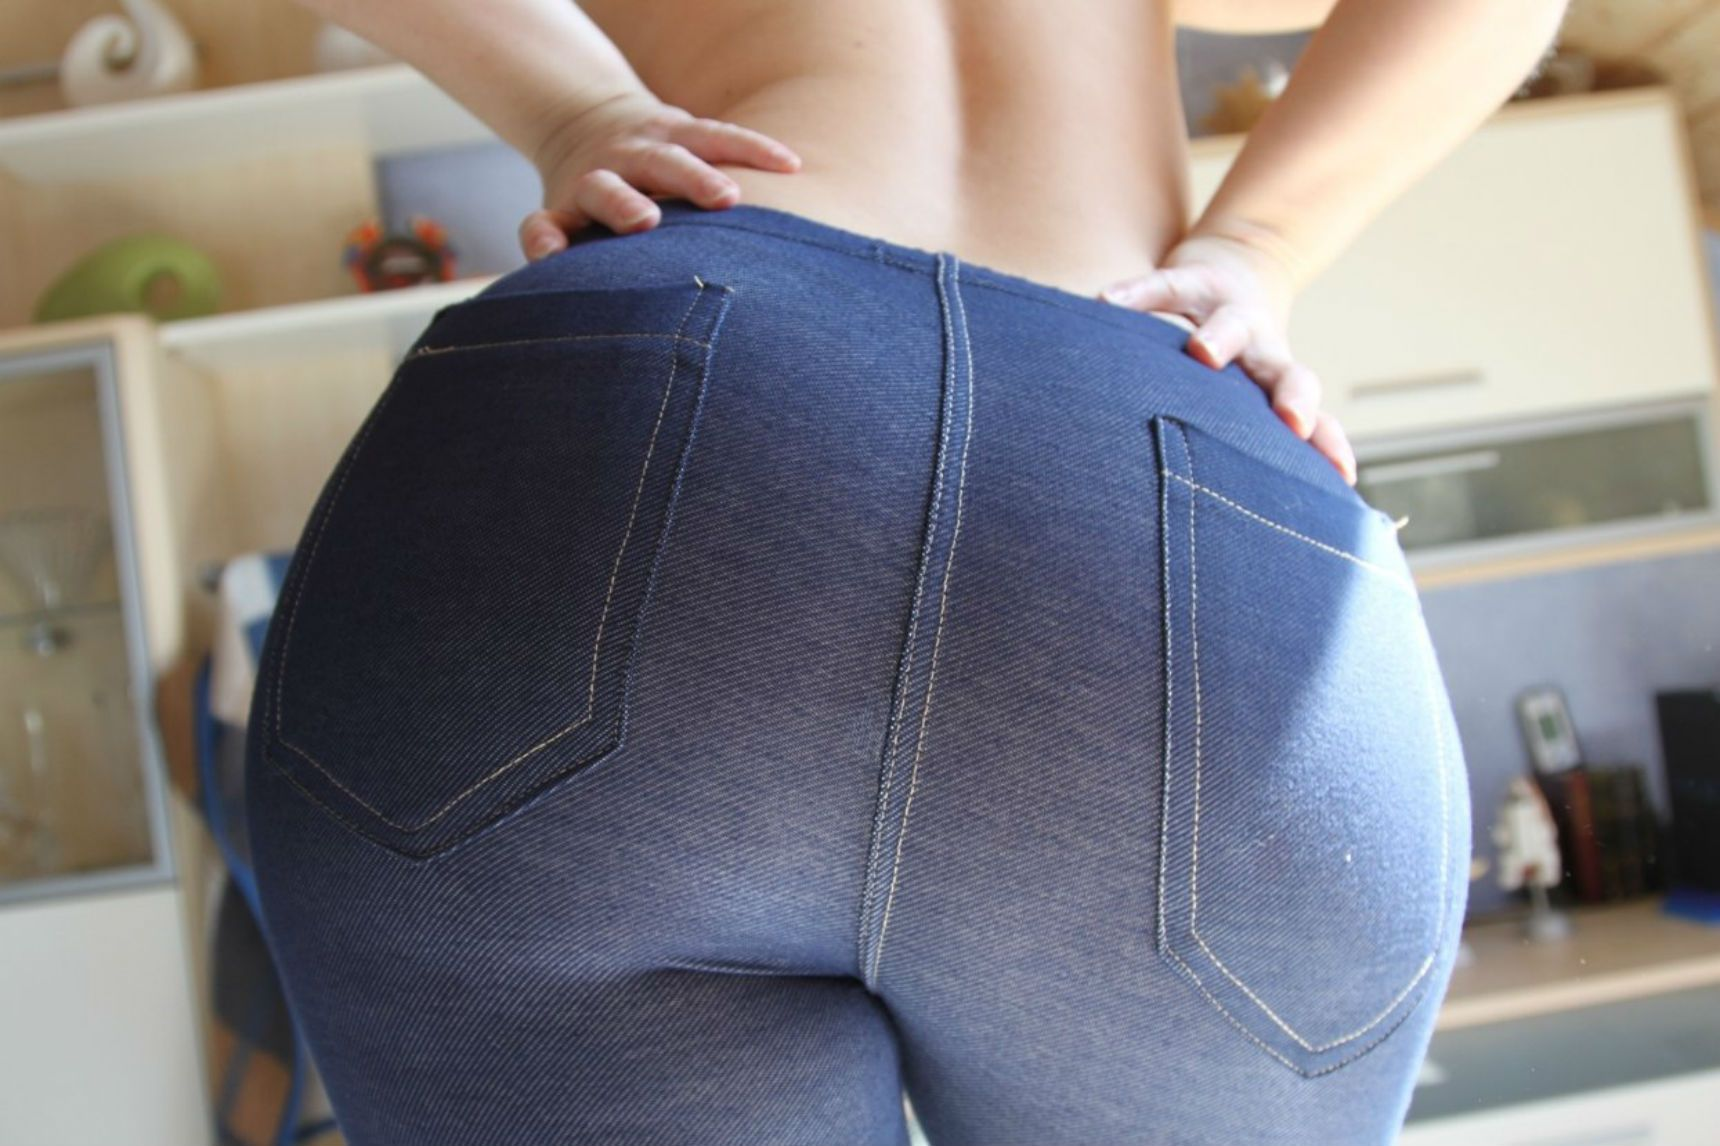 10 annoying problems that come with having a big butt